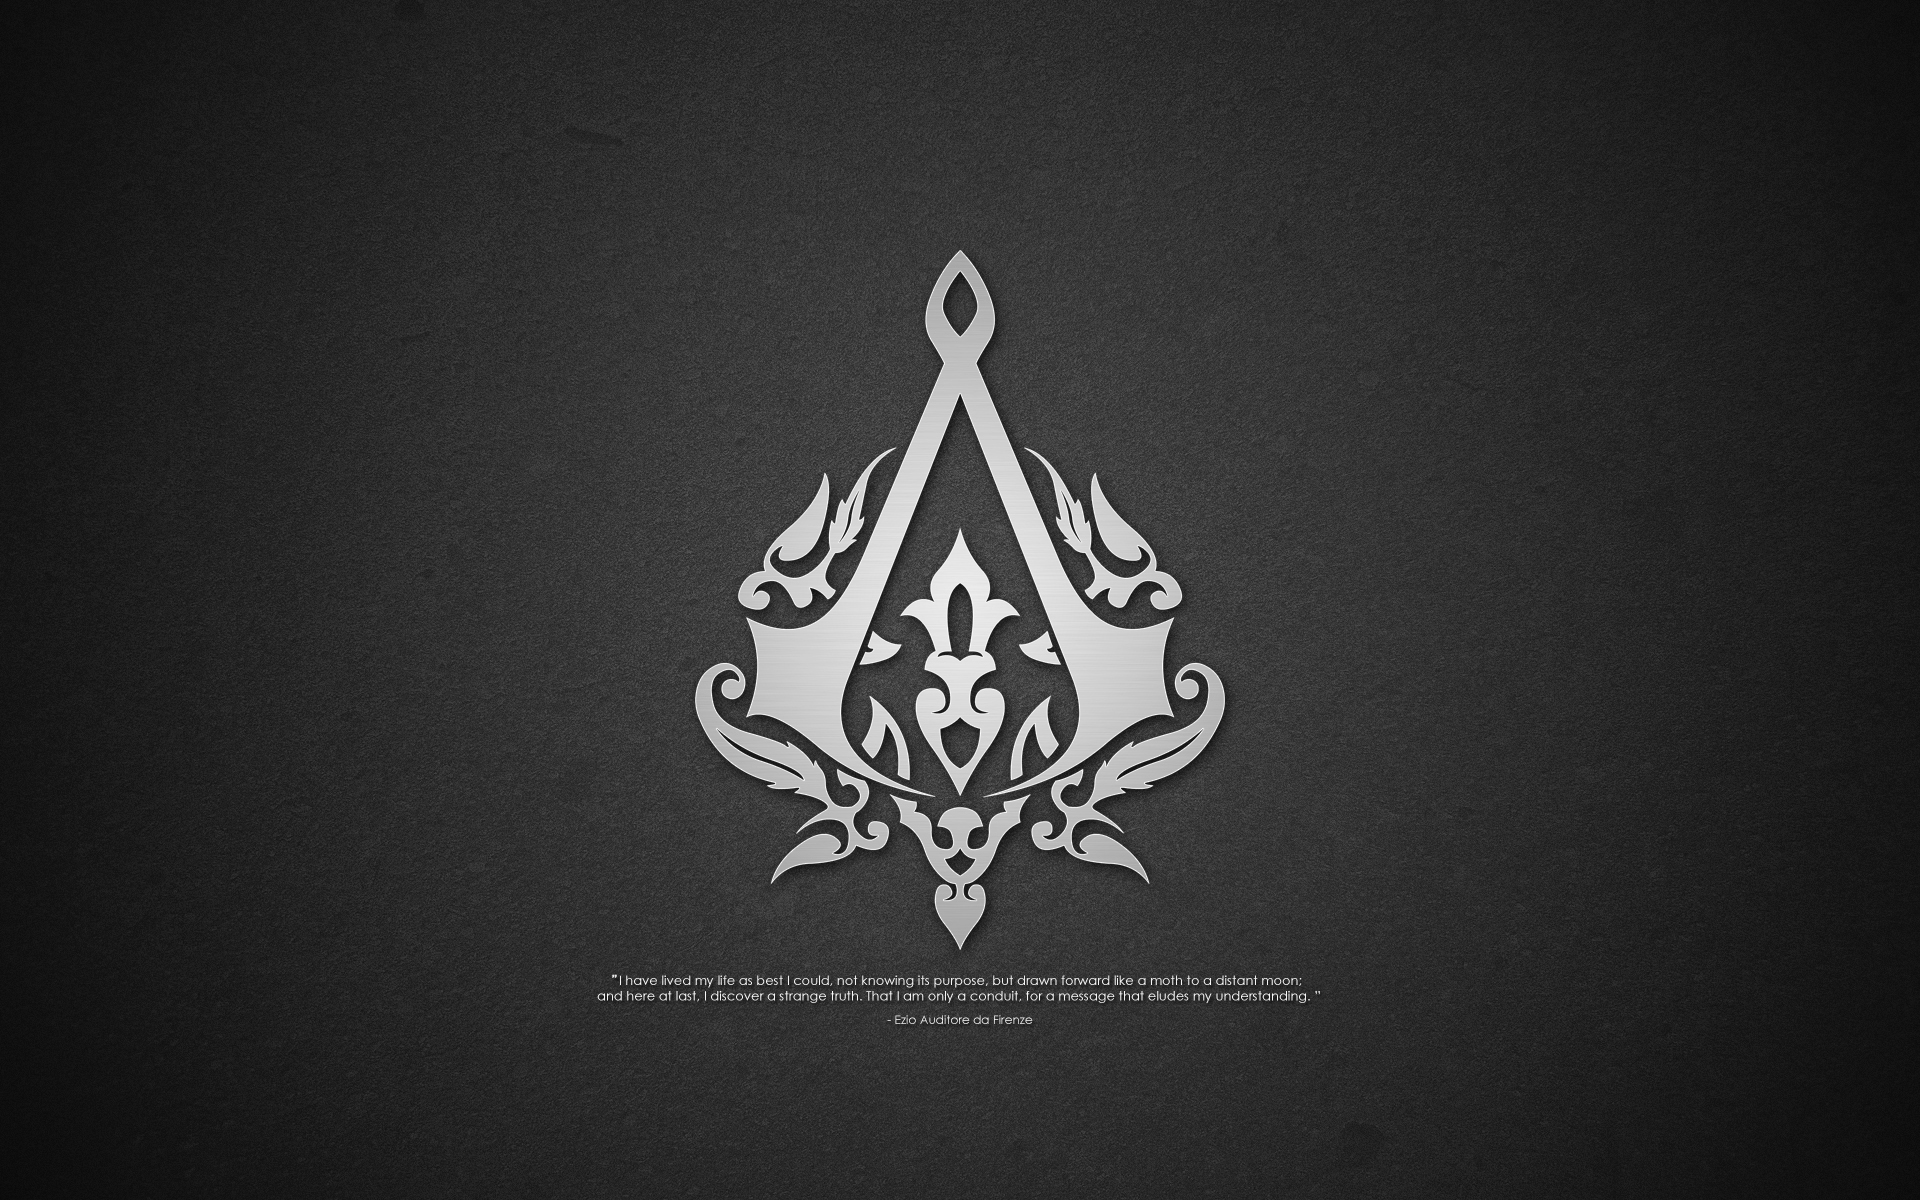 assassins creed logo wallpaperassassins creed  revelations wallpaper 1920x1200